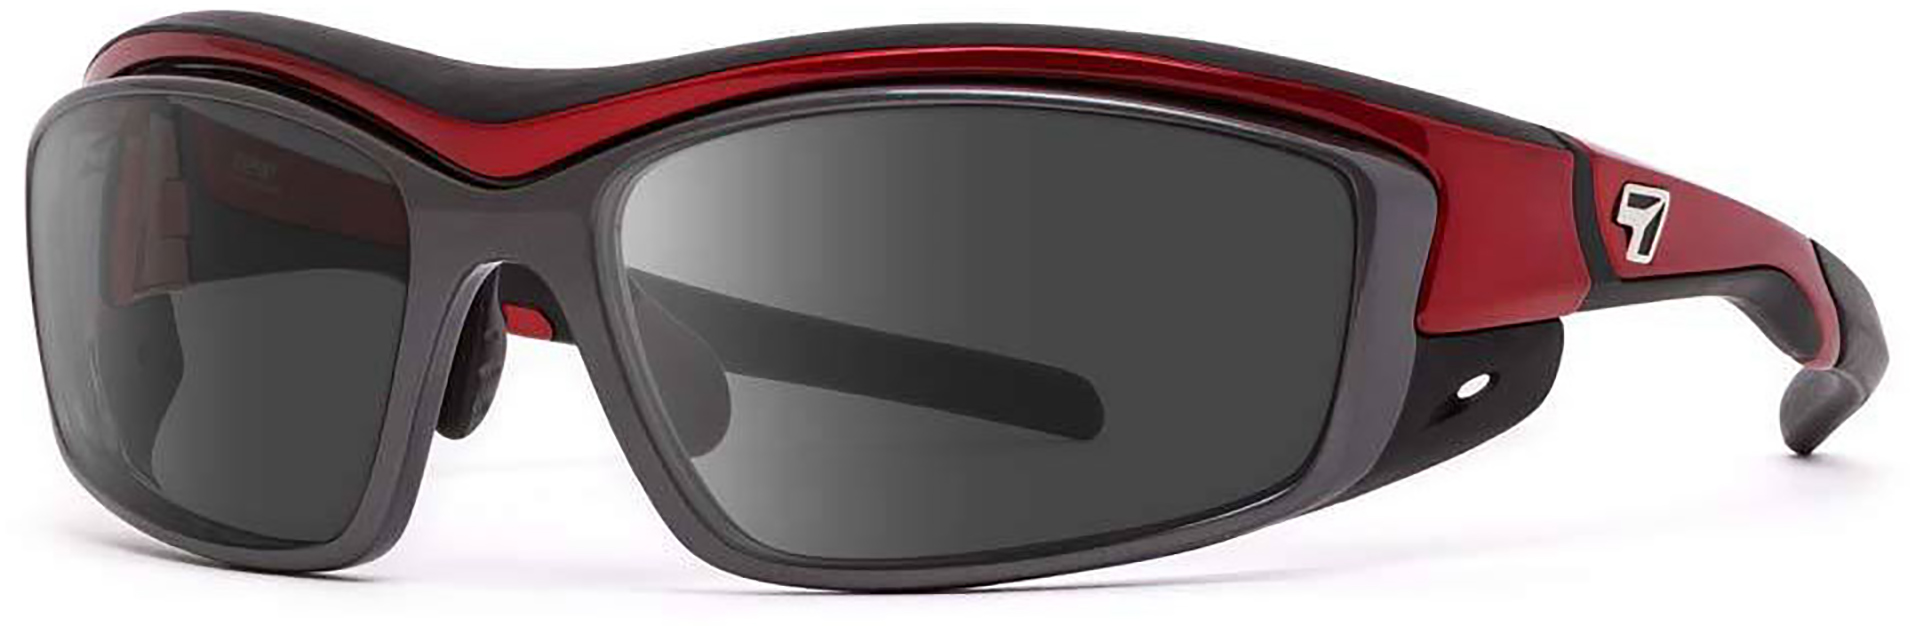 7Eye Rocker in Candy Apple Red Frame with Polarized Gray Lenses, Angled to the Side Left